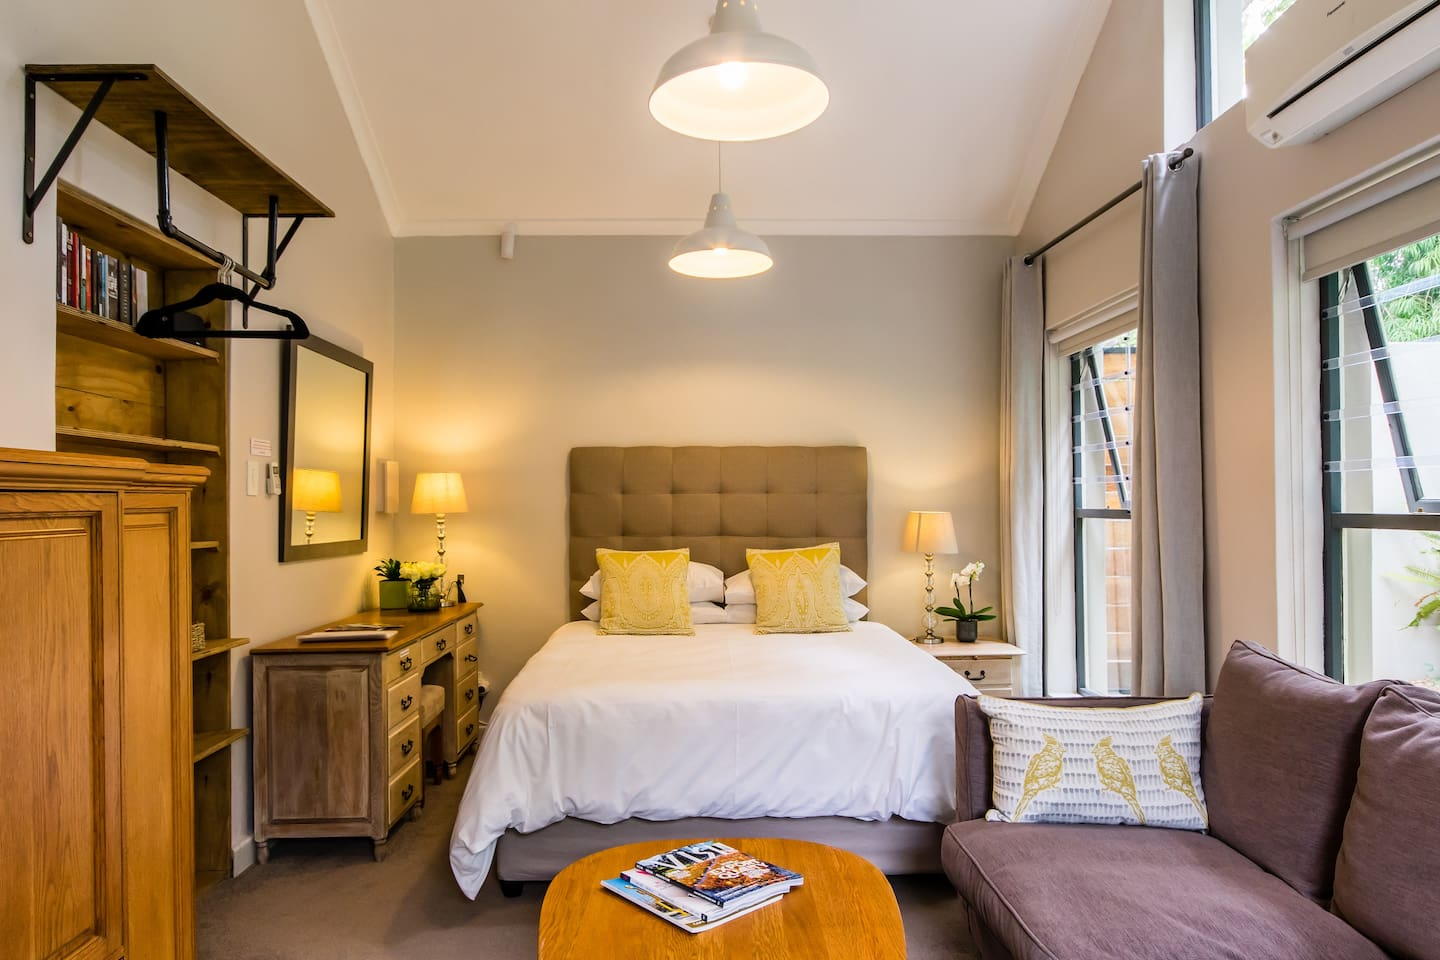 Die Buitekamer is a tranquil, warm and welcoming studio apartment perfect for guests wanting to relax, unwind and explore the wine region. Set in a picturesque suburb central to the Stellenbosch winelands. We are just 3km from the centre of town.